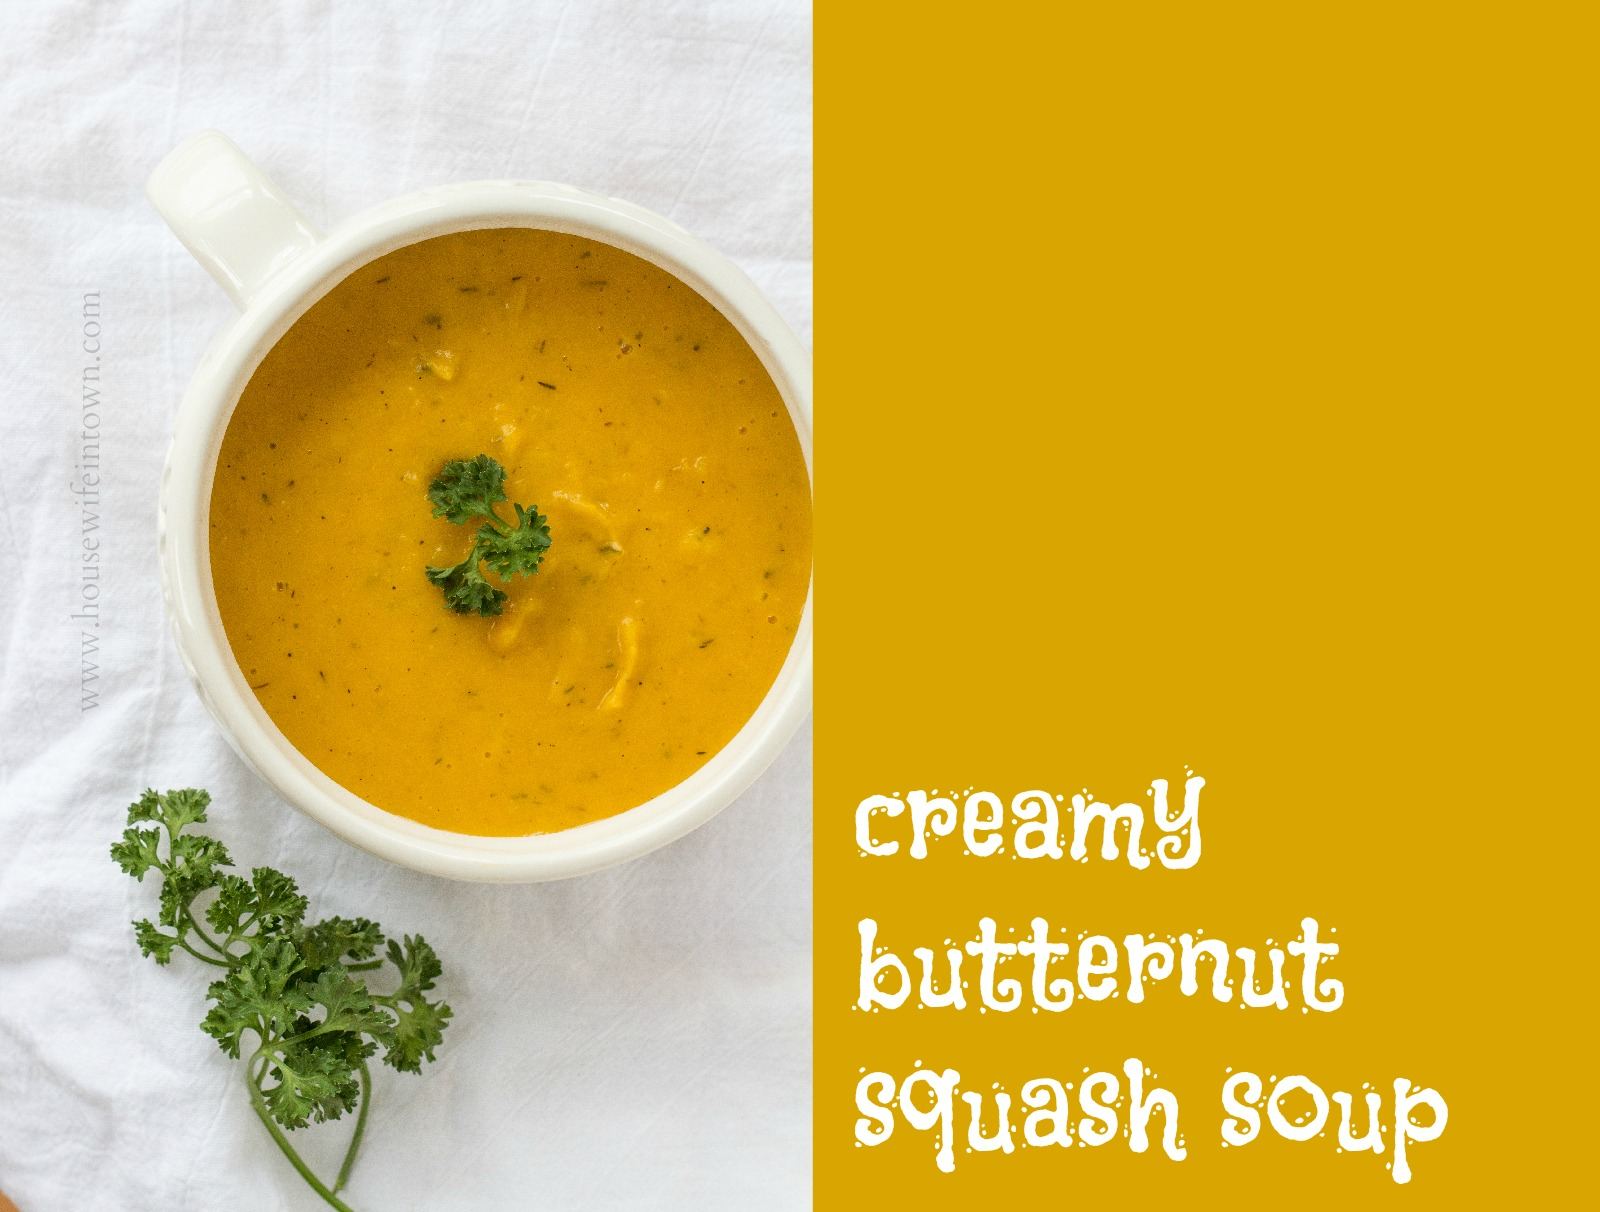 Pete and Buzz: roasted butternut squash soup